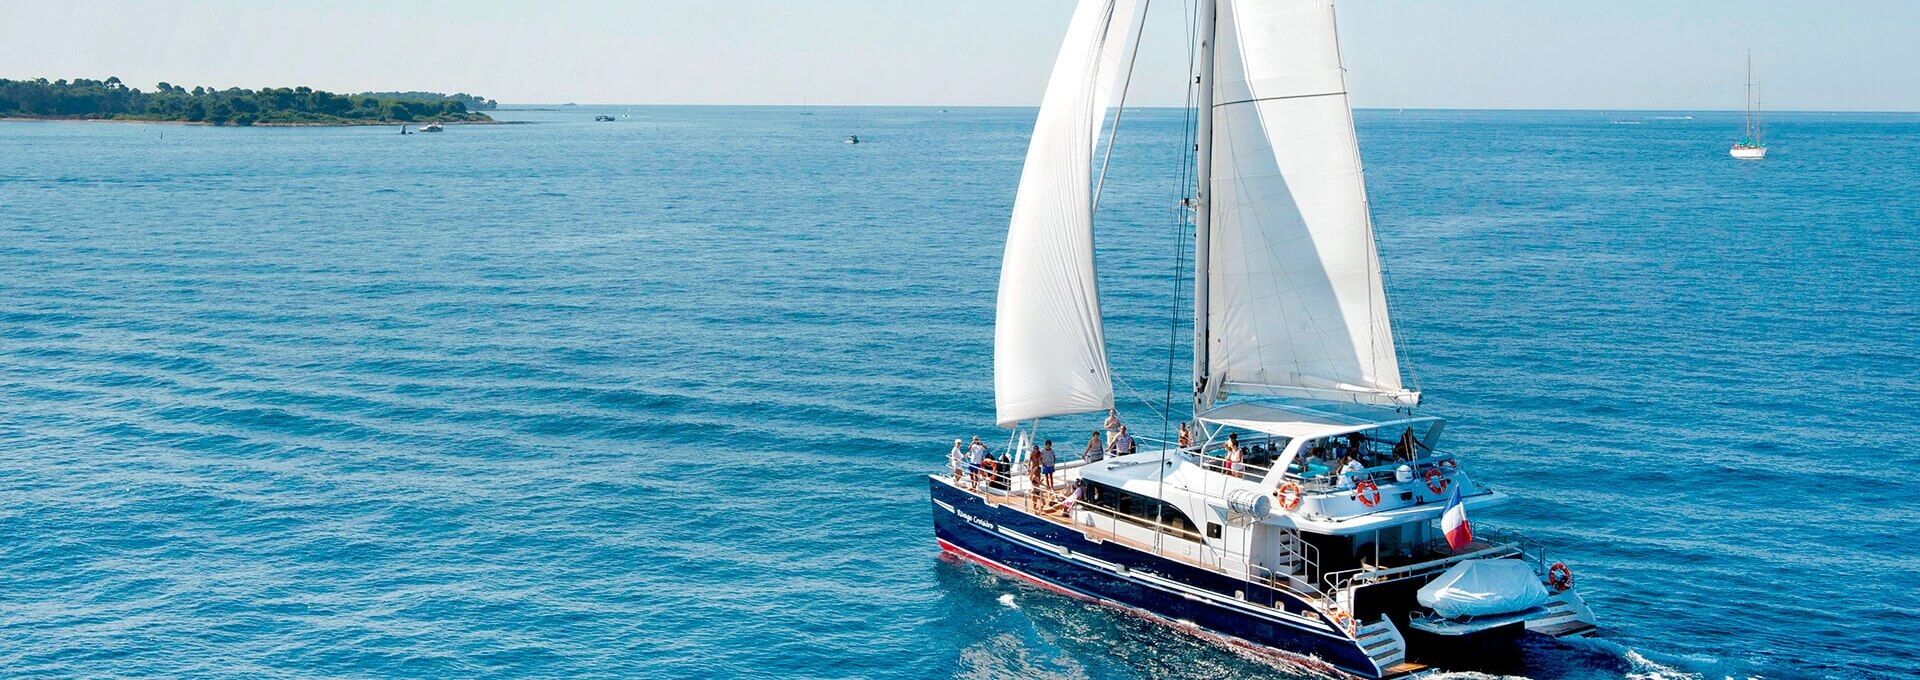 Charter catamaran rental cannes rivage croisi re for Cocktail 80 personnes